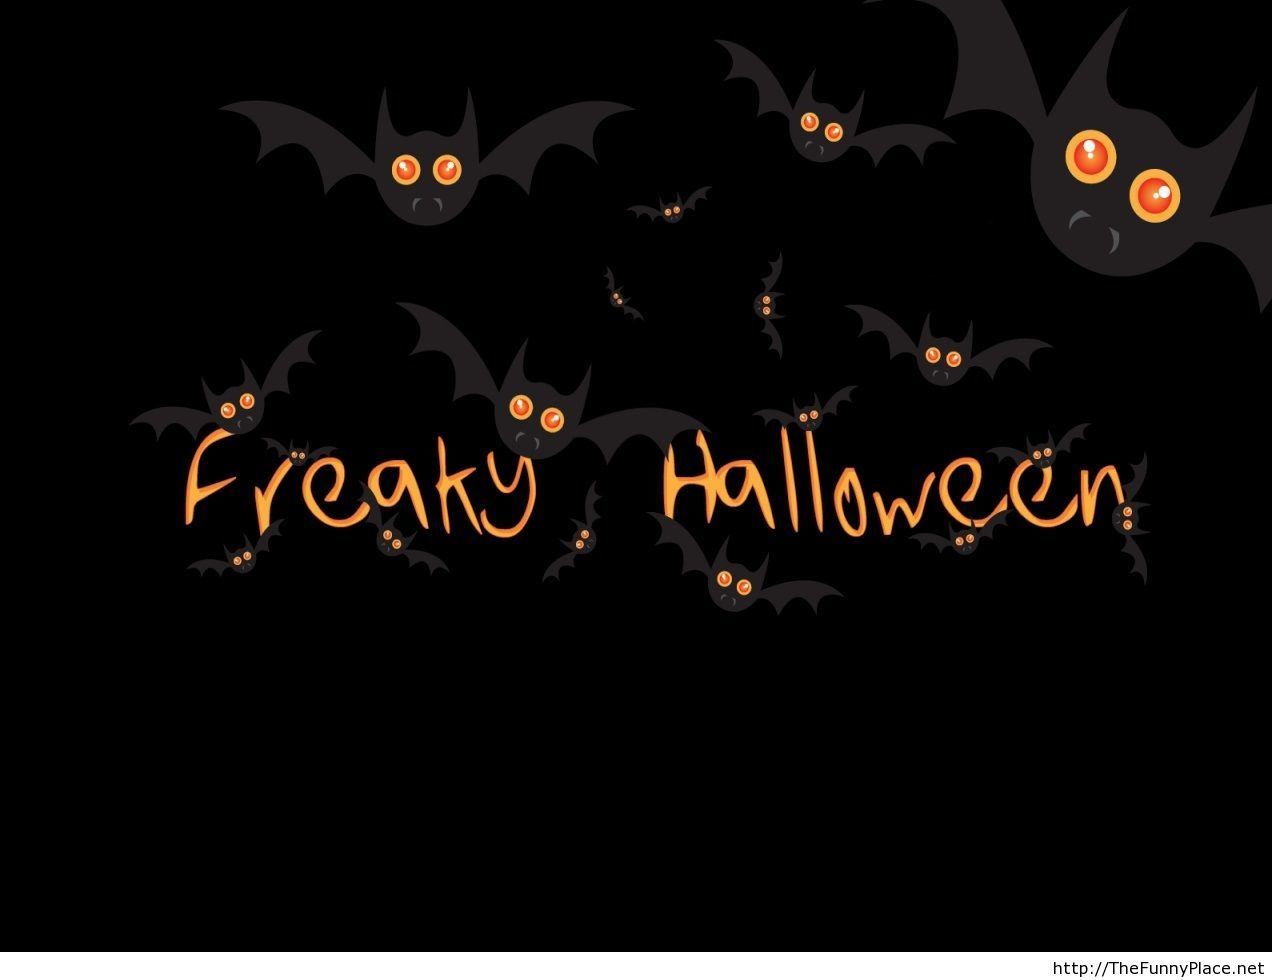 freaky-halloween-wallpaper-widescreen-1280x1024 (1)